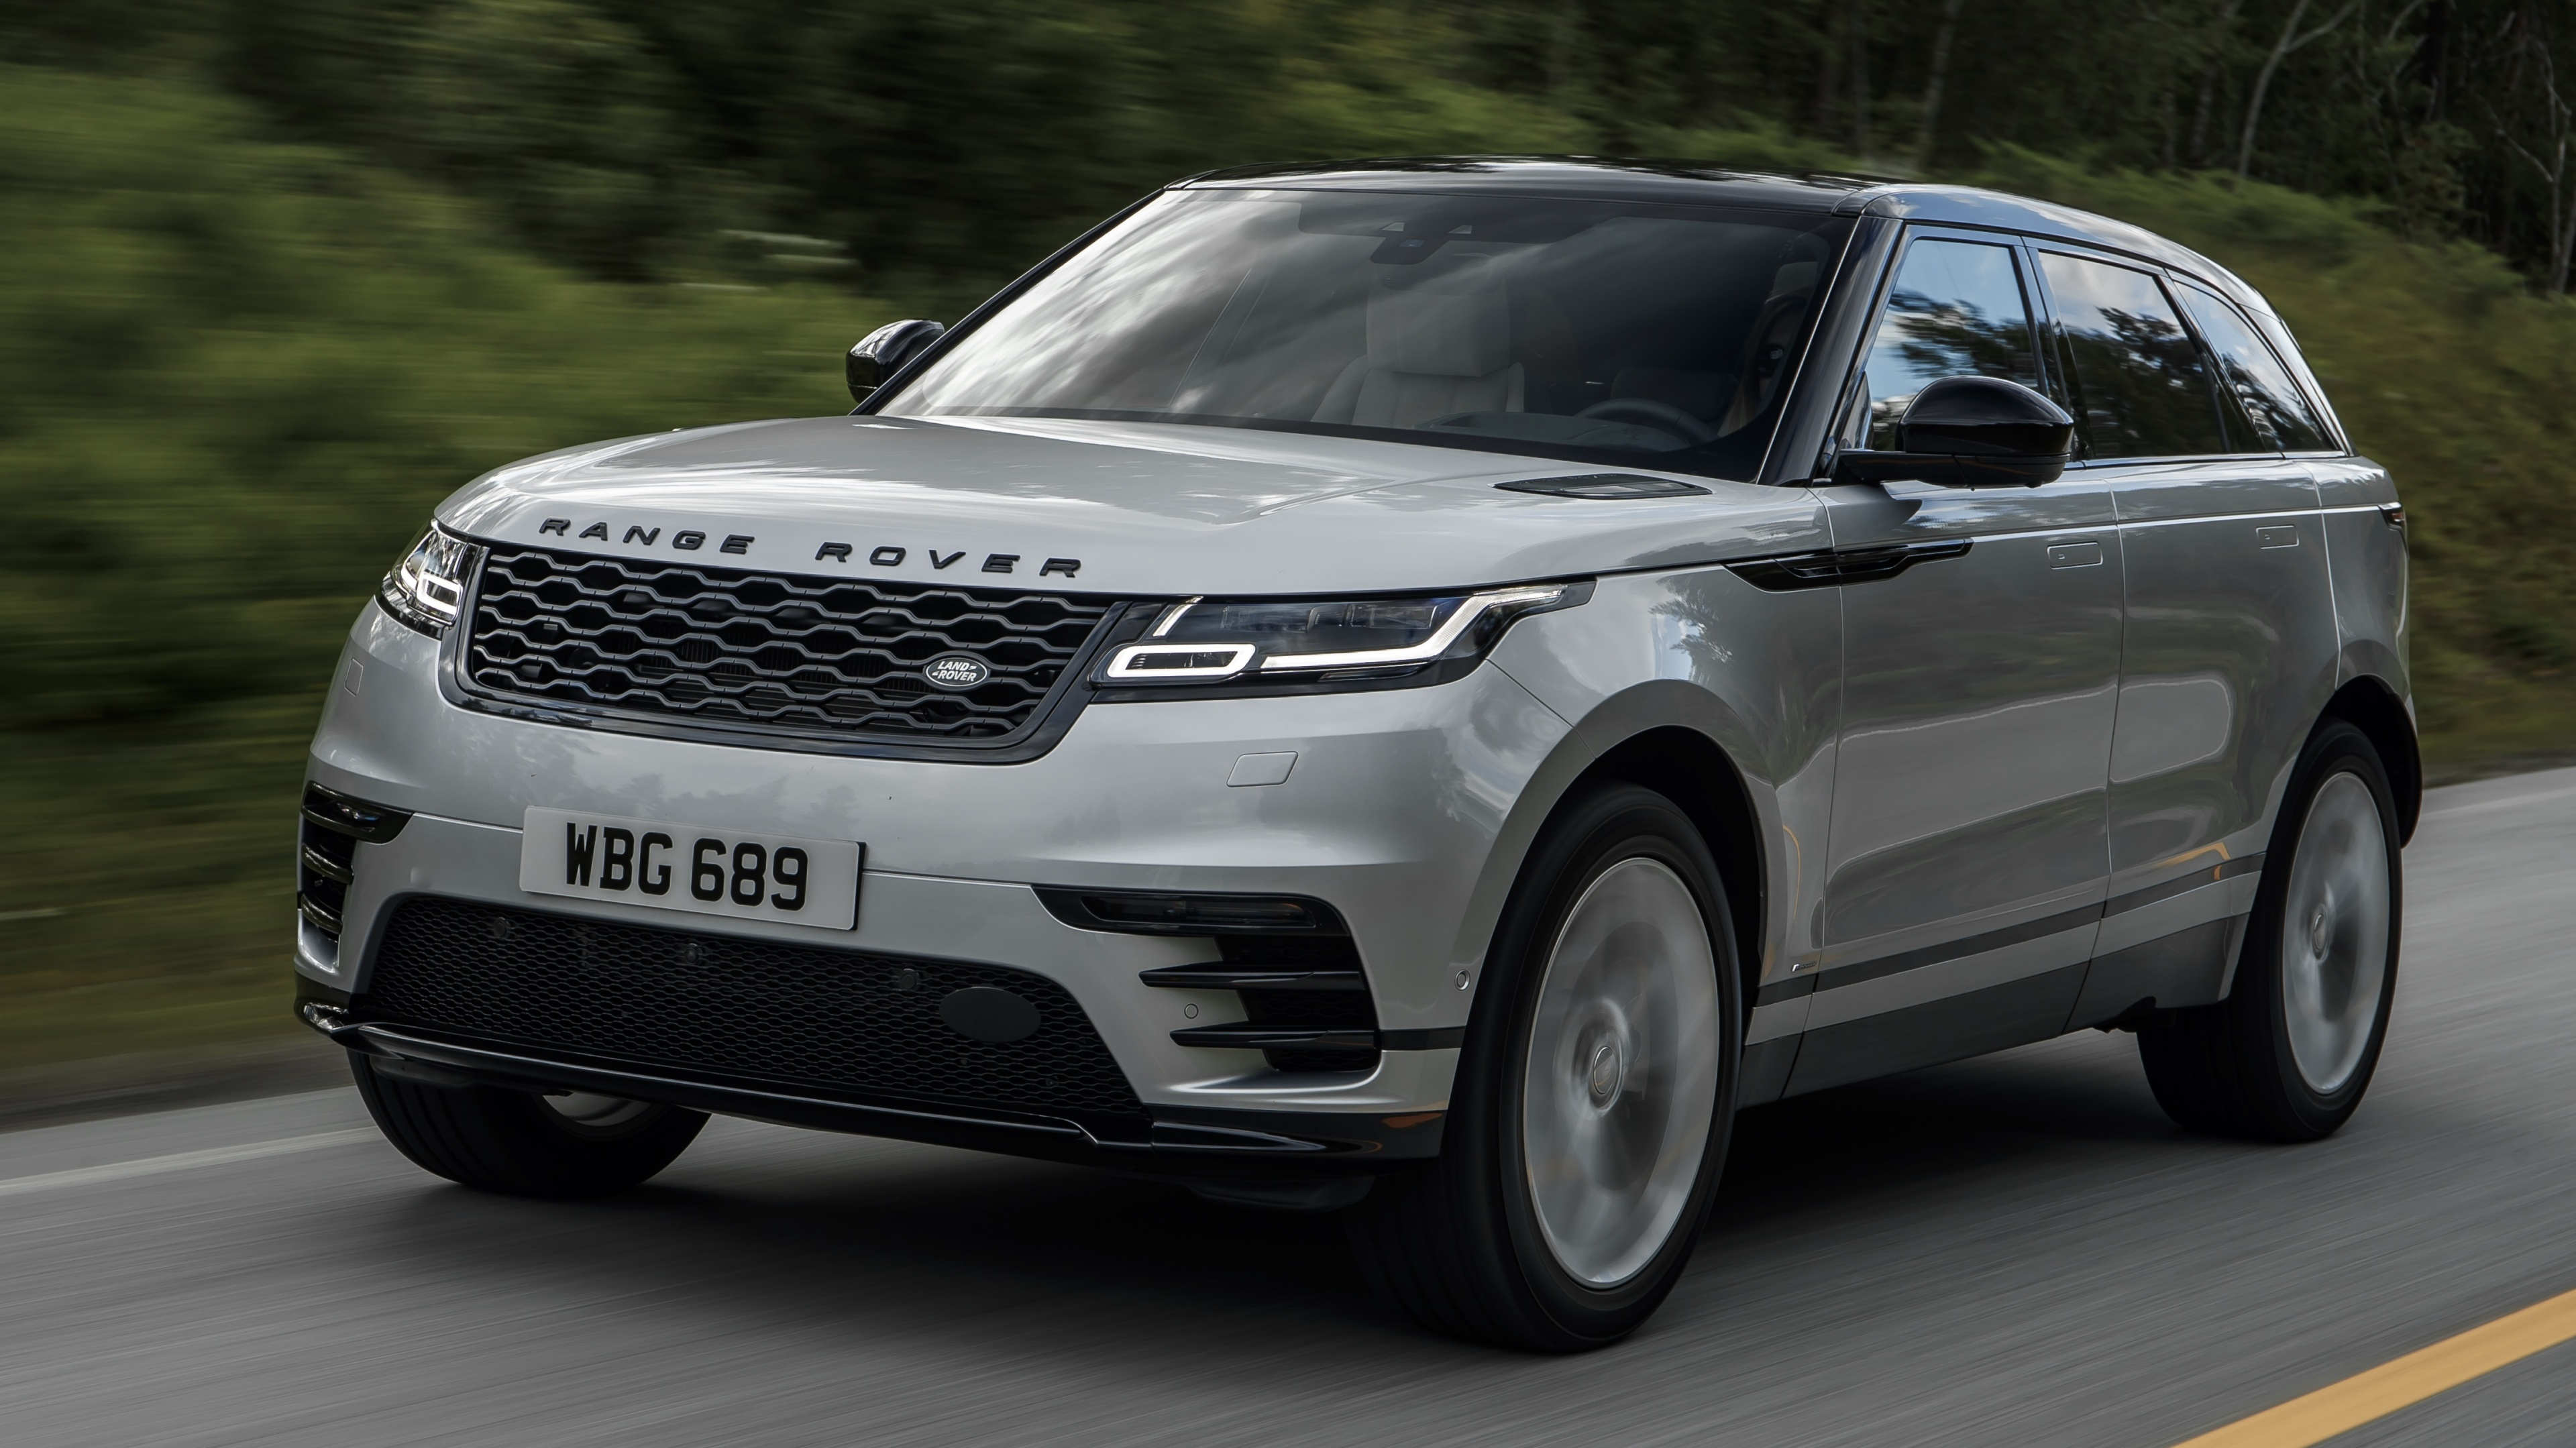 Velar drives record sales for Jaguar Land Rover in the USA